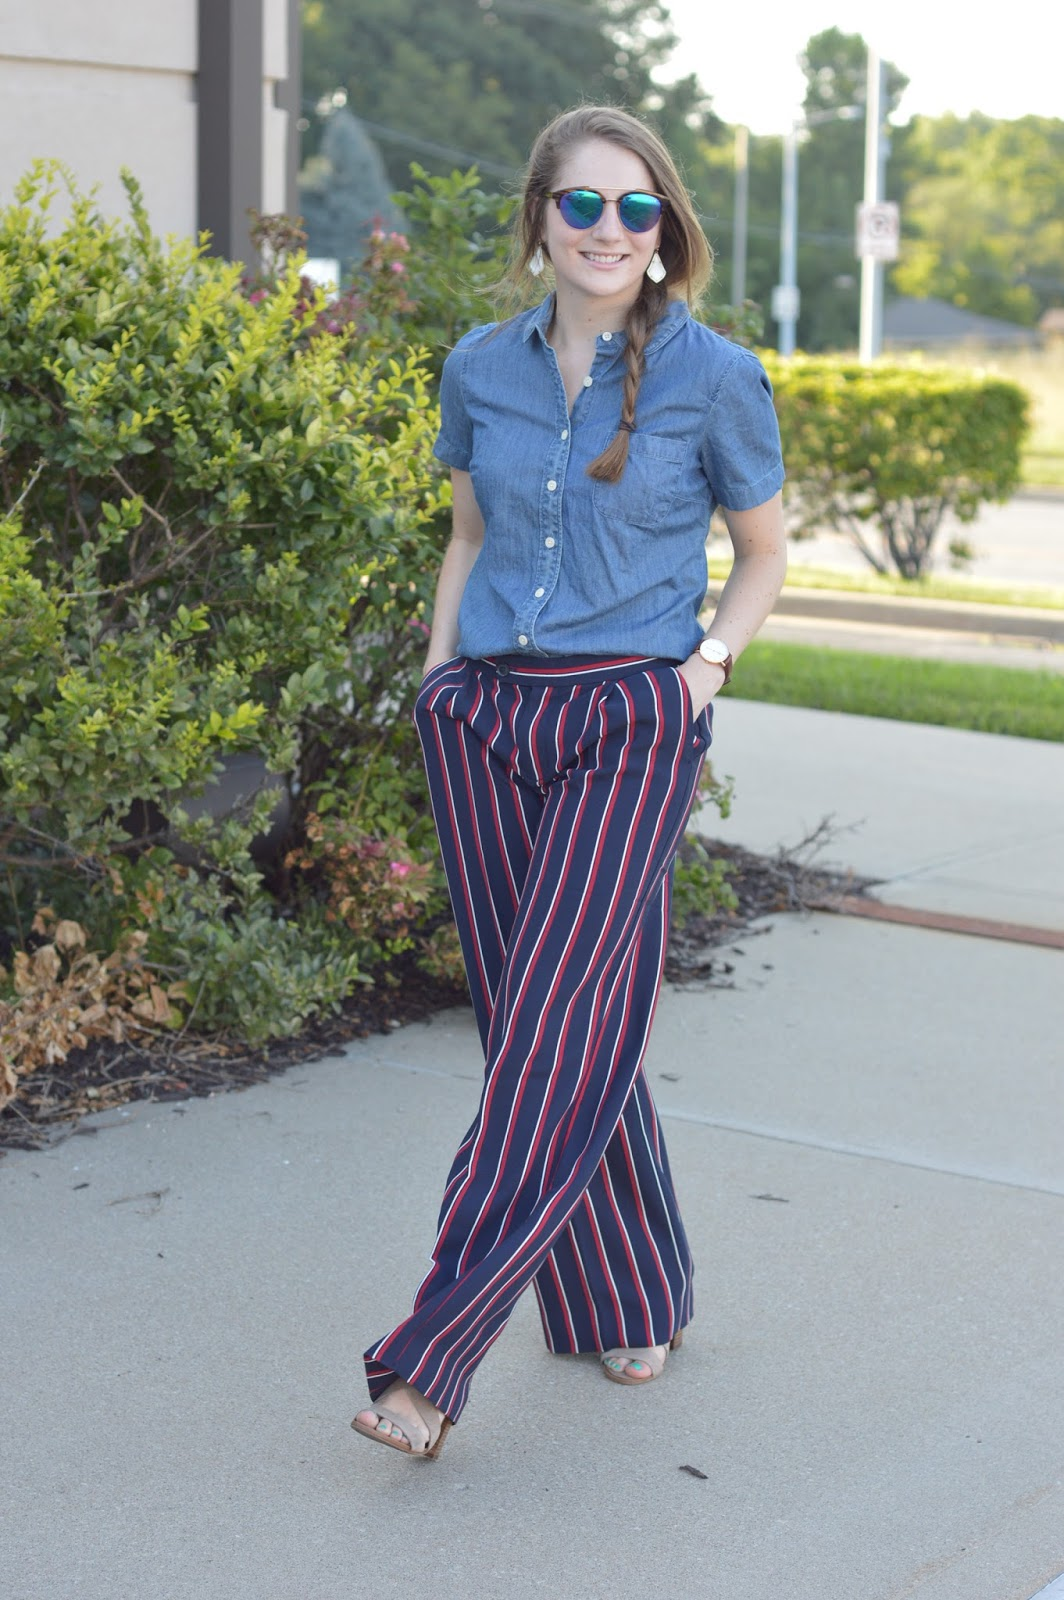 chambray top with dress pants for work | cute outfit ideas for work | business casual outfit ideas | what to wear to work this summer | how to wear striped dress pants | a memory of us